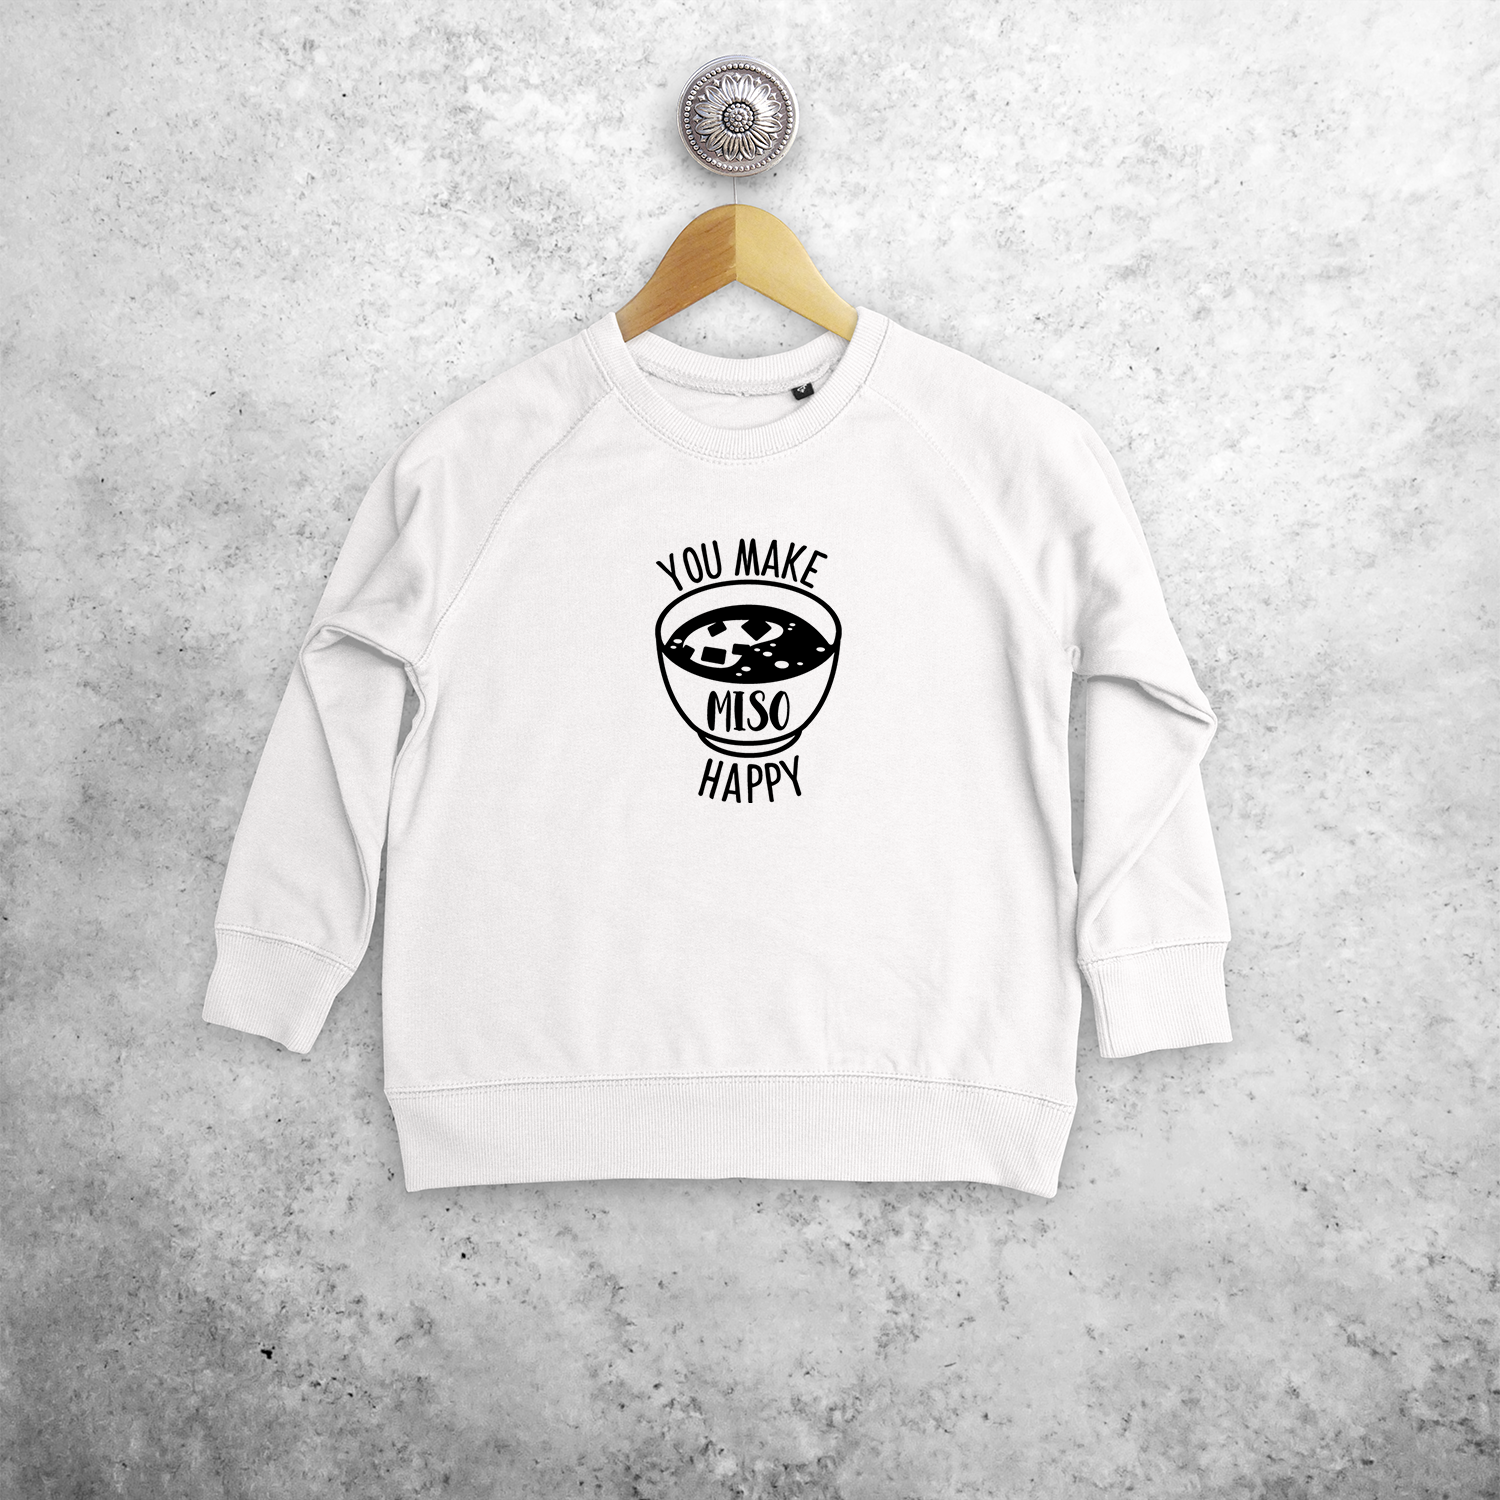 'You make miso happy' kids sweater